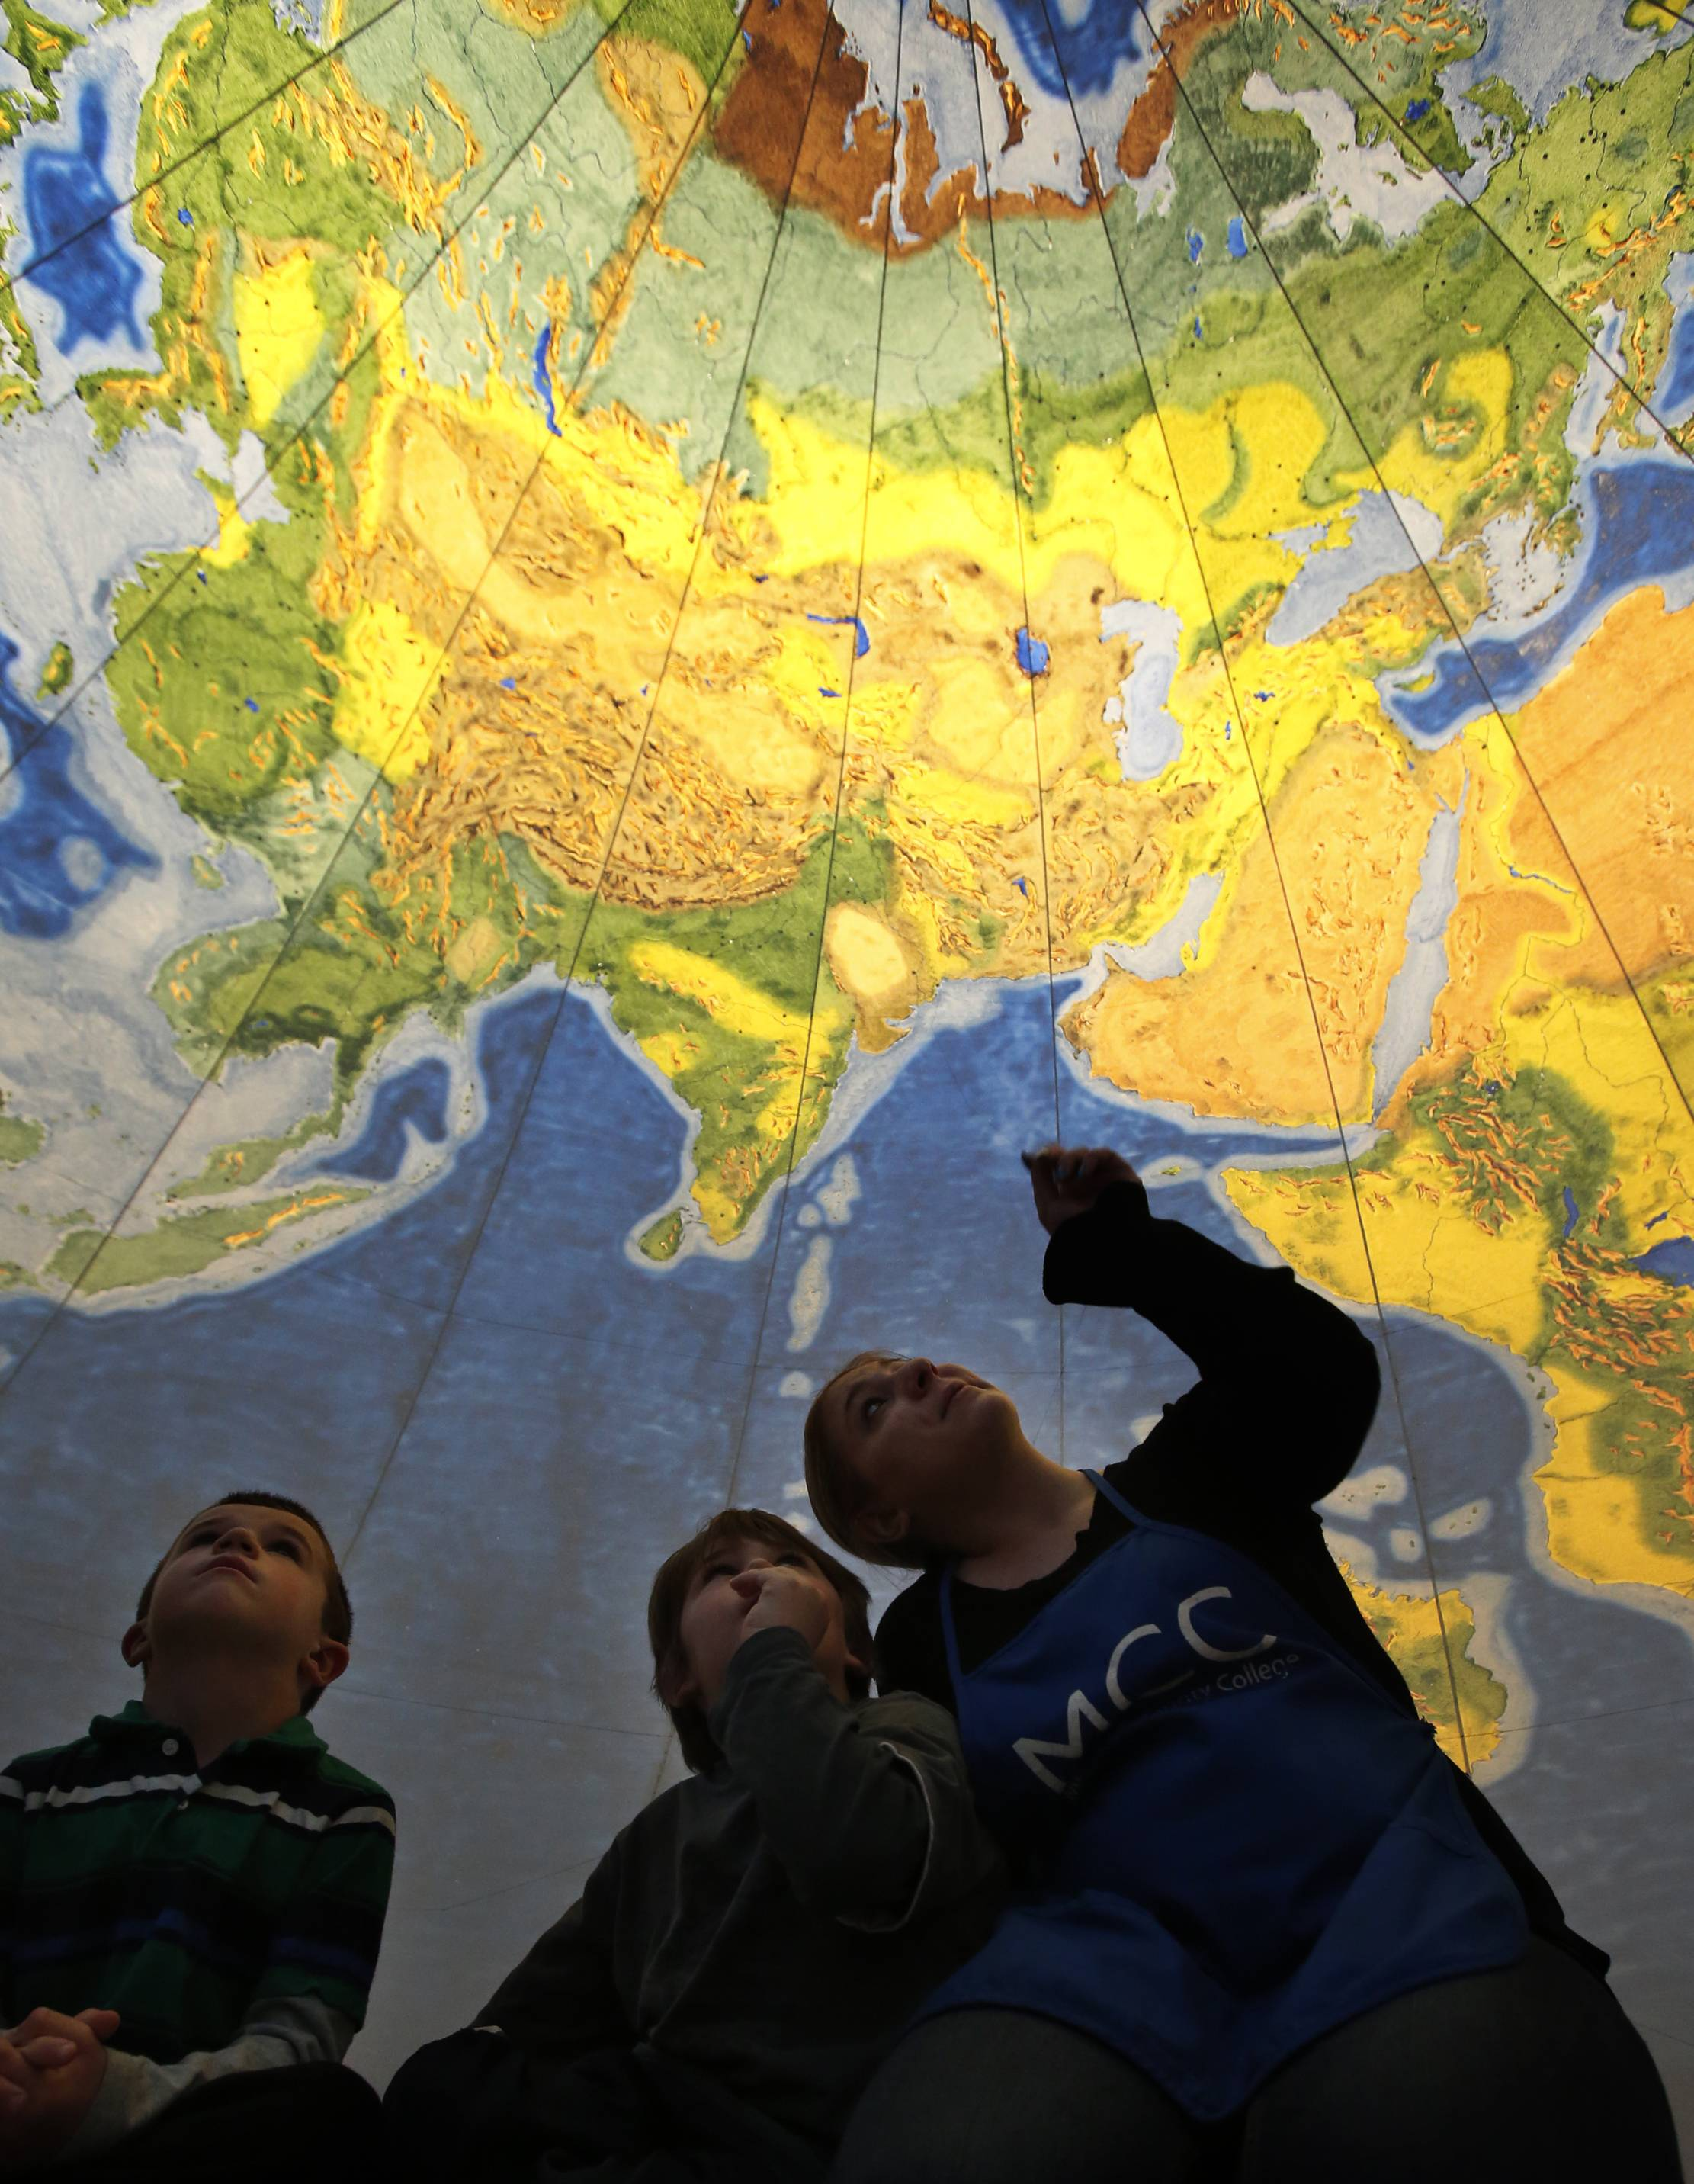 McHenry County College Children's Learning Center students Joshua Dalton, left, and Jaxton Michaels gaze up from the inside of the inflatable GeoSphere Monday on the Crystal Lake campus. Pointing out some of the Earth's features to Jaxton is student teacher Jill Shadwell. Both Joshua and Jaxton are 4 years old and from Crystal Lake. Director Steve Jansen of The Geographic Society of Chicago taught the kids about how much water covers Earth, the rain forests and the relative size of mountains compared with the depths of the oceans.